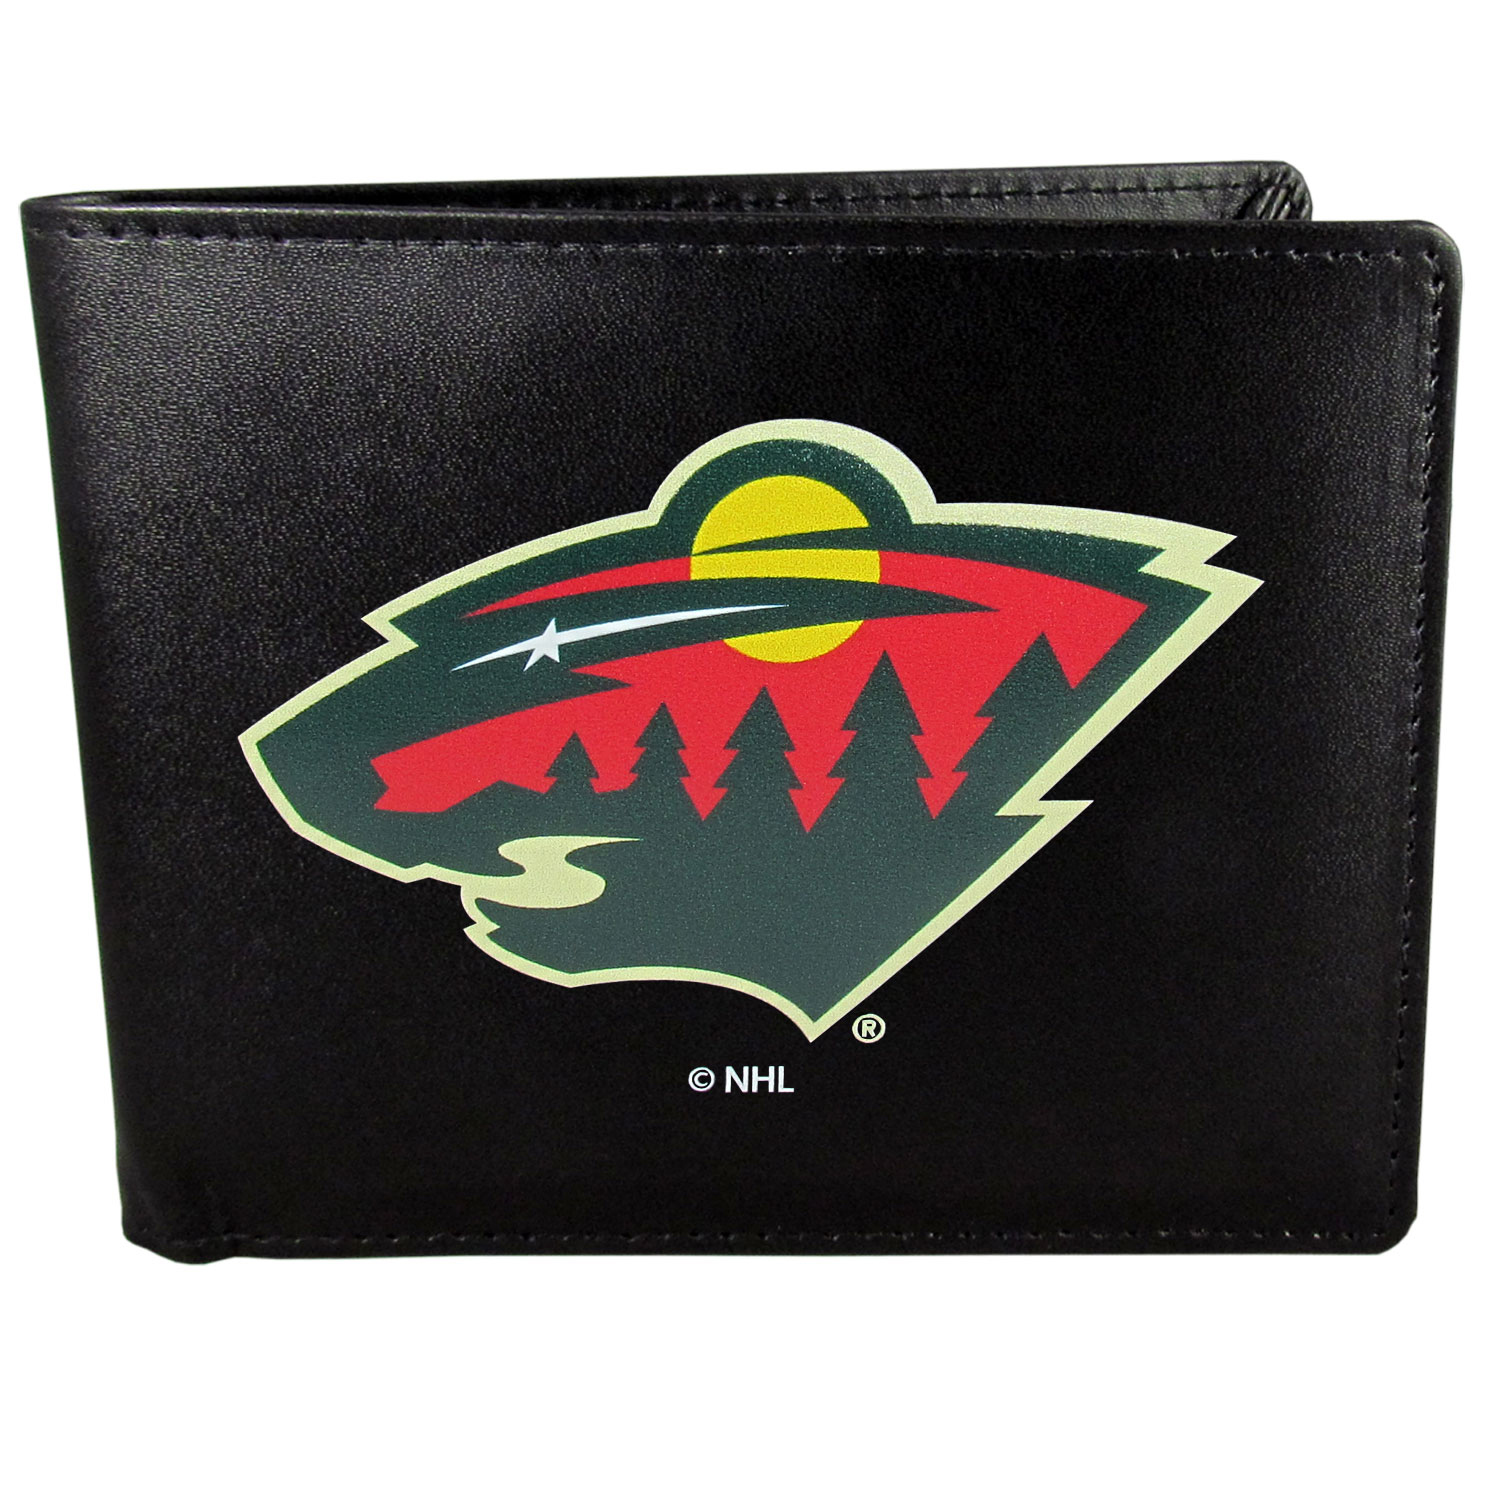 Minnesota Wild® Leather Bi-fold Wallet, Large Logo - Our classic fine leather bi-fold wallet is meticulously crafted with genuine leather that will age beautifully so you will have a quality wallet for years to come. The wallet opens to a large, billfold pocket and numerous credit card slots and has a convenient windowed ID slot. The front of the wallet features an extra large Minnesota Wild® printed logo.